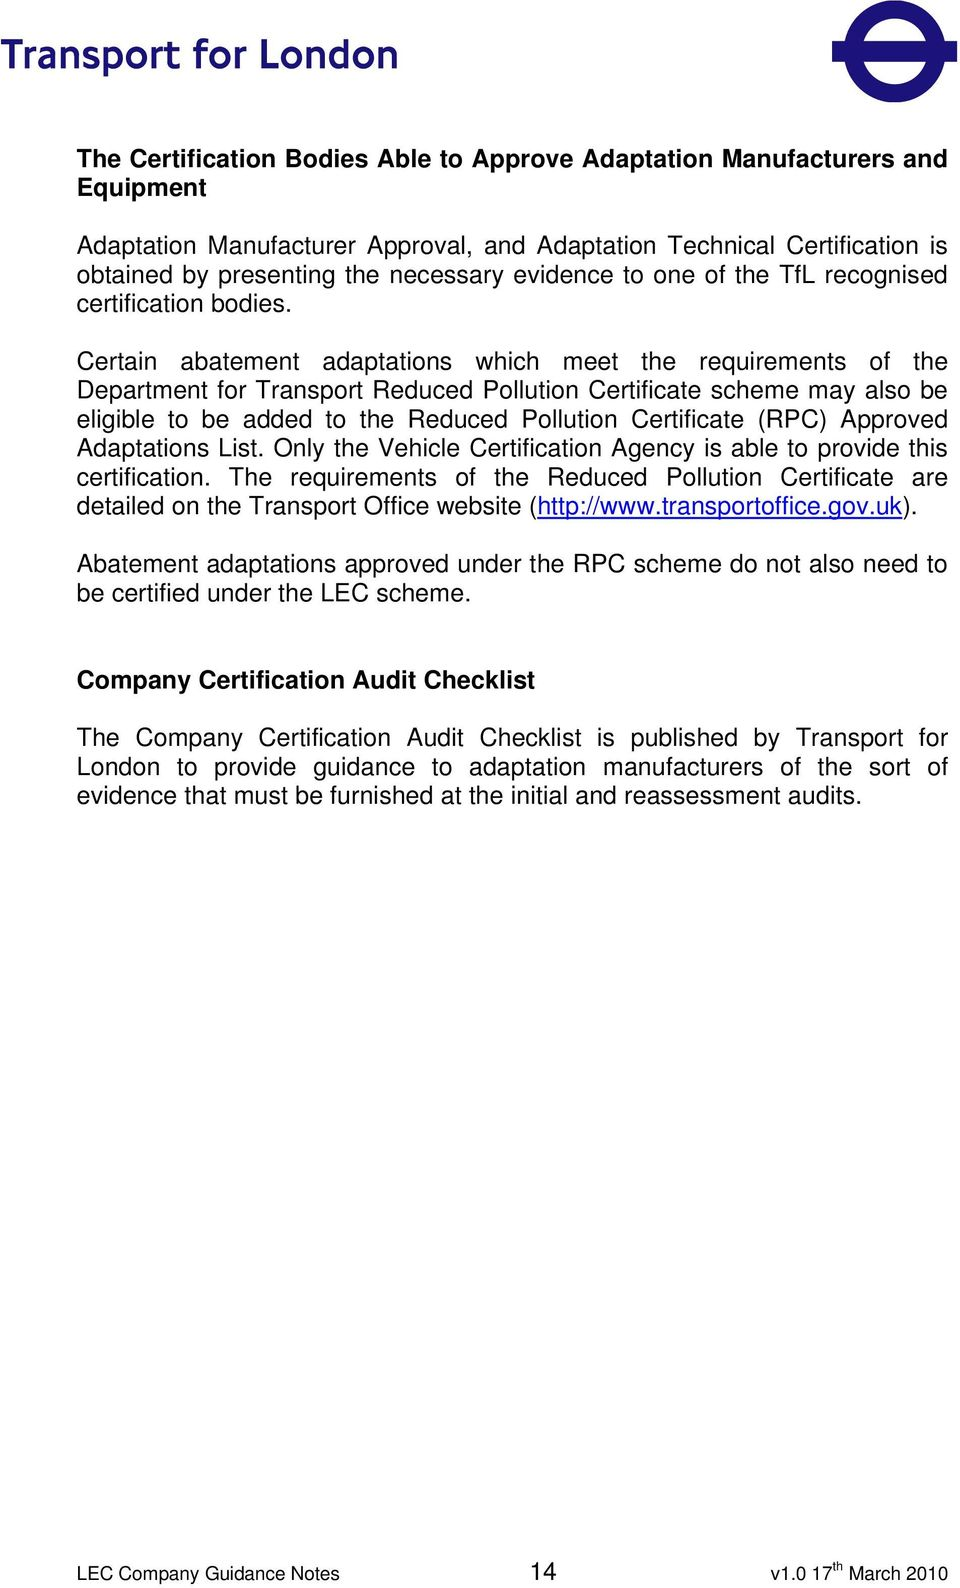 Certain abatement adaptations which meet the requirements of the Department for Transport Reduced Pollution Certificate scheme may also be eligible to be added to the Reduced Pollution Certificate